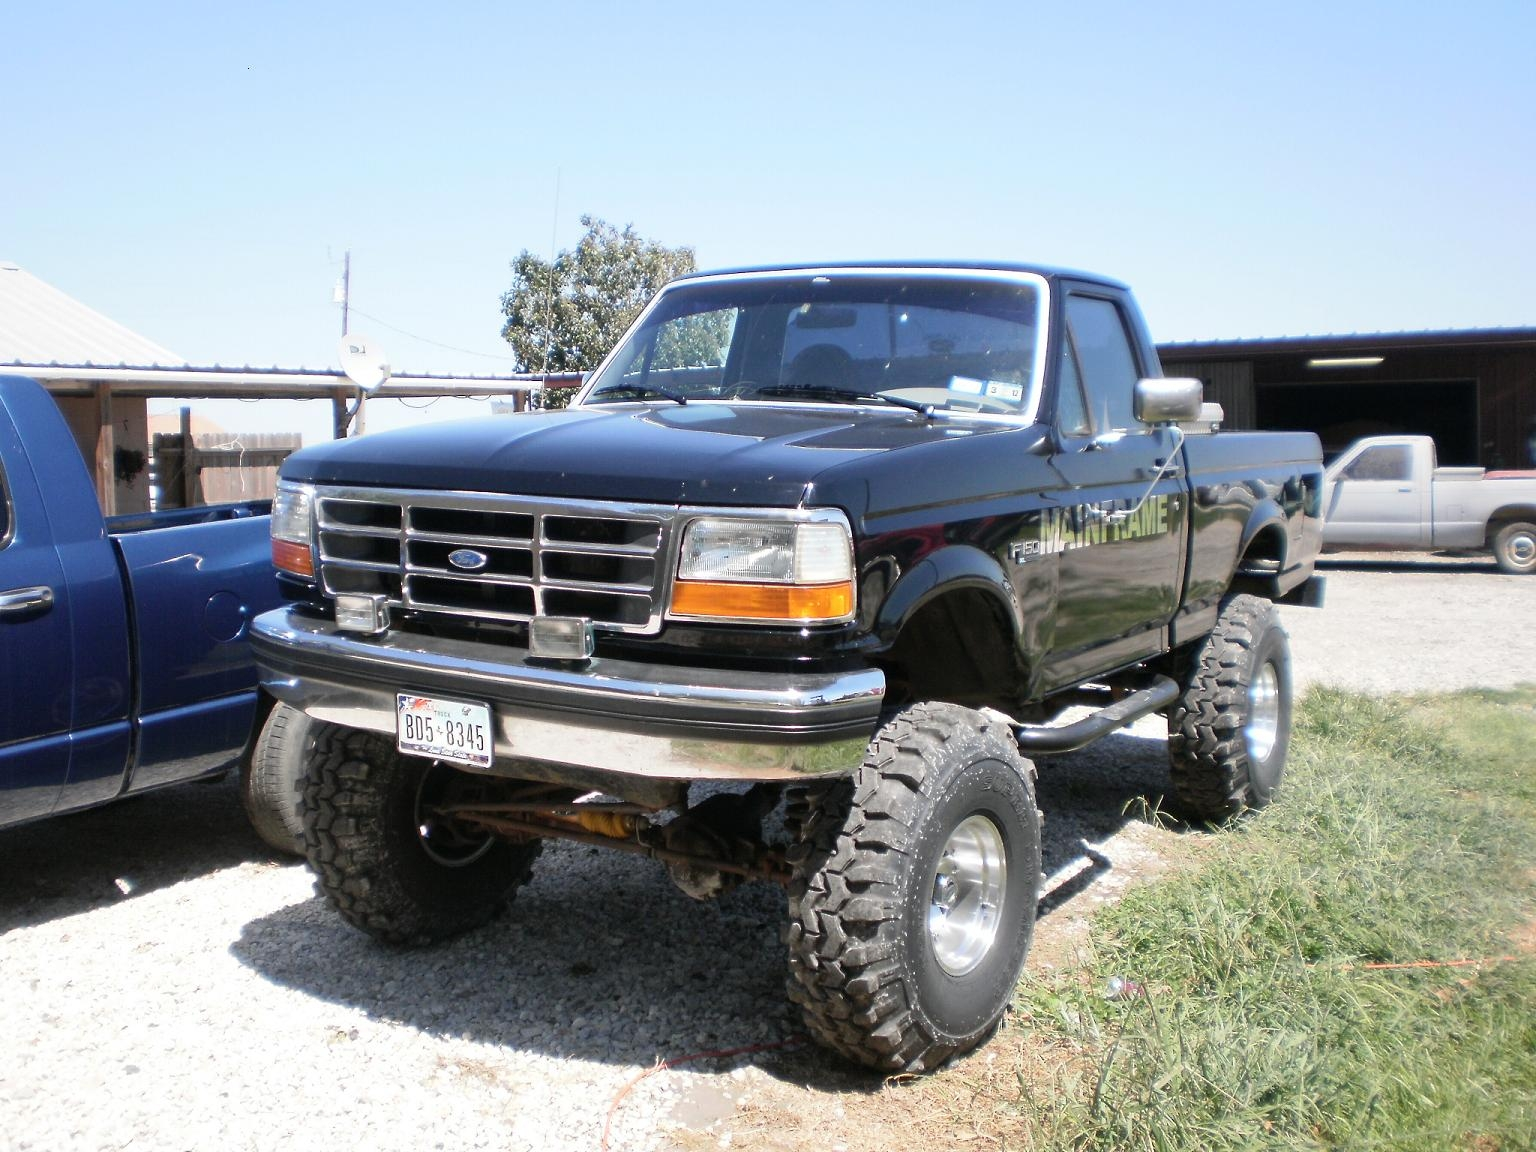 96 Ford F150 Parts GrandParkway 1996 Ford F150 Regular CabShort Bed Specs, Photos ...